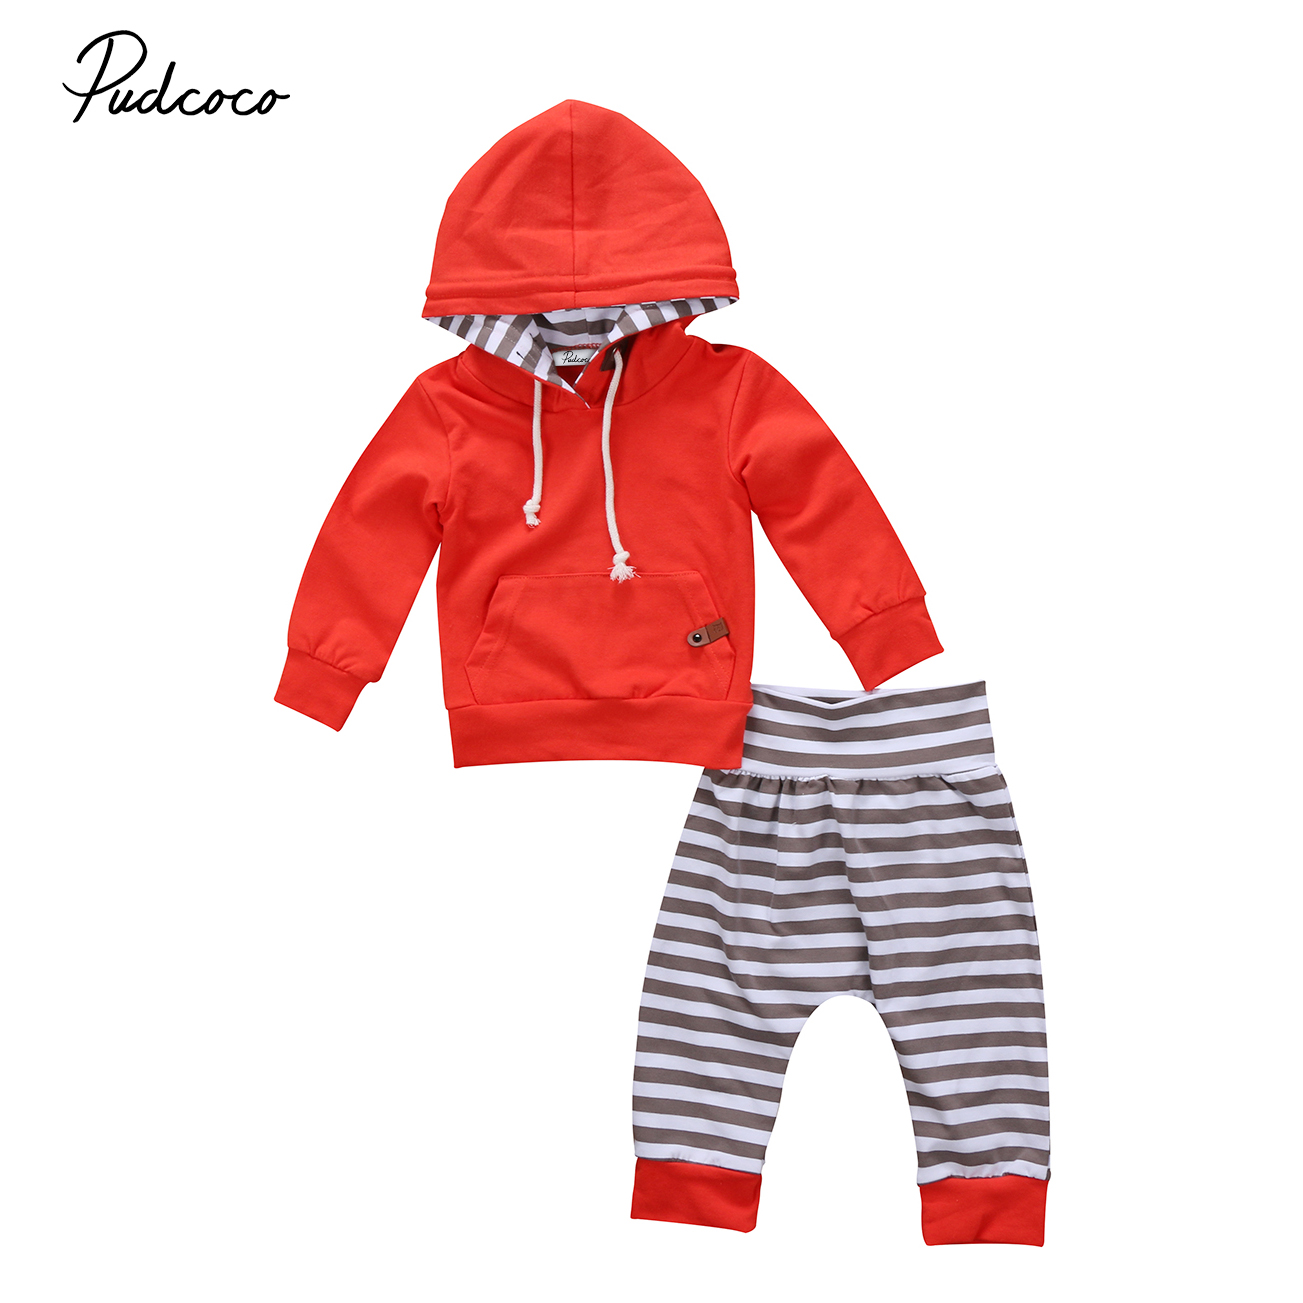 Pants Outfits 2Pcs Set Clothes Toddler Baby Boy Girl Striped Pocket Hoodie Tops